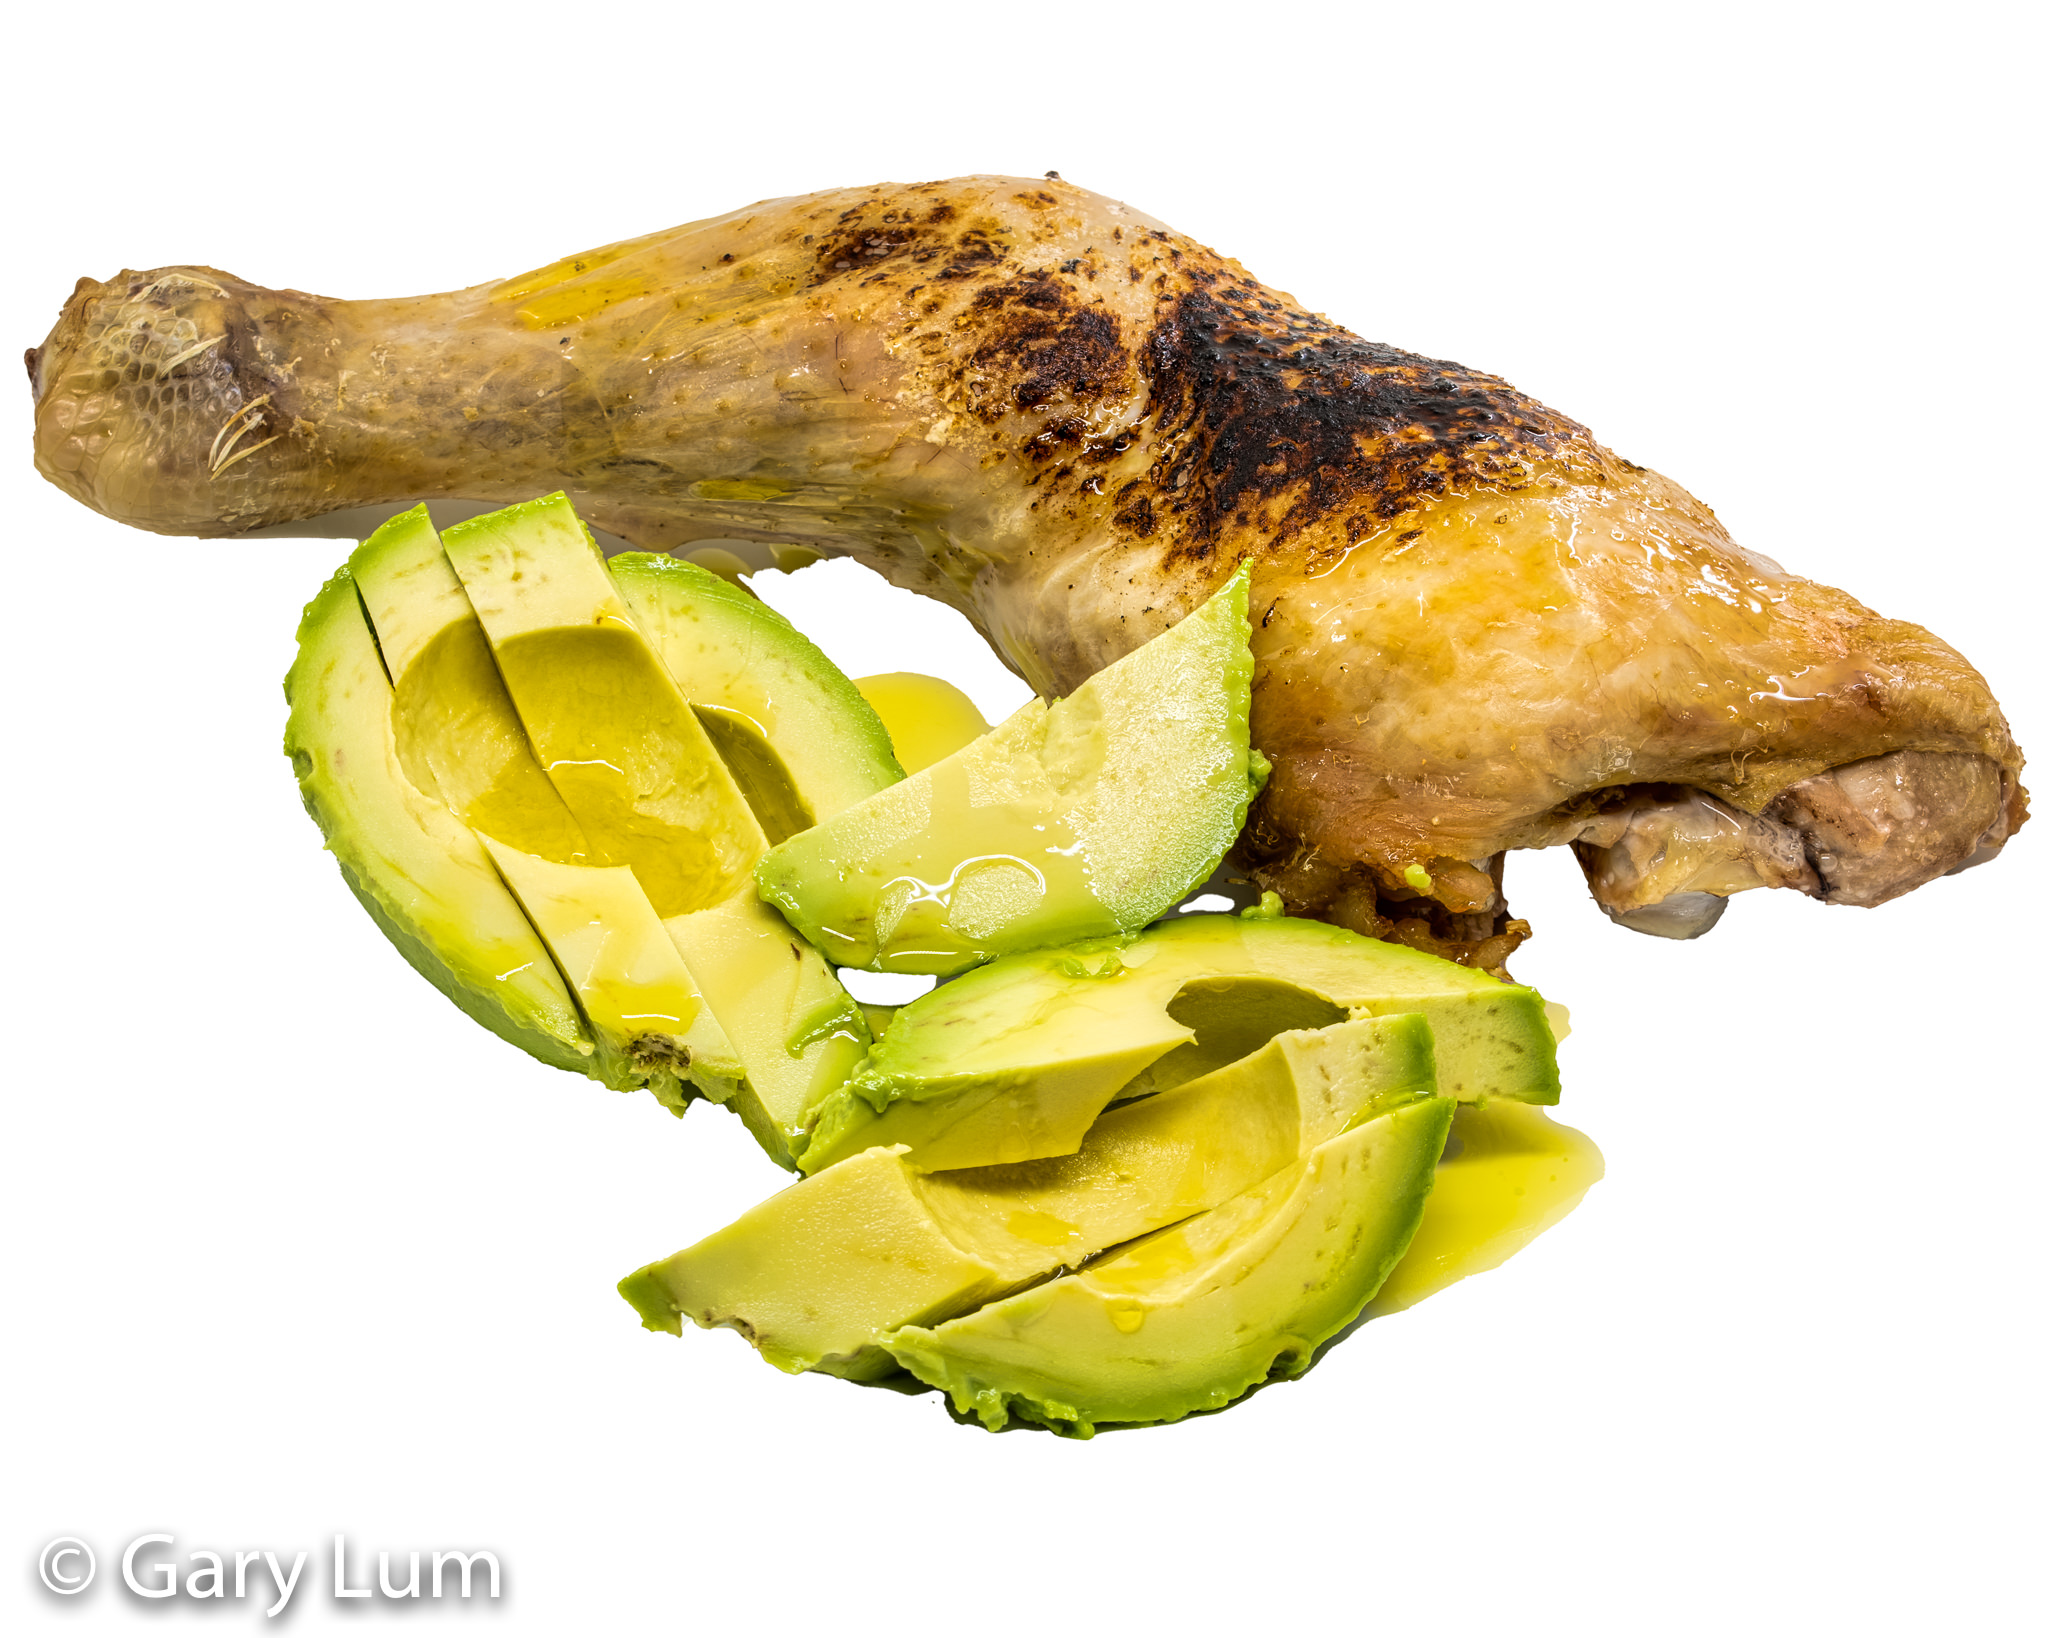 Roast chicken and avocado. MEATER™ wireless meat thermometer enabled. Gary Lum.